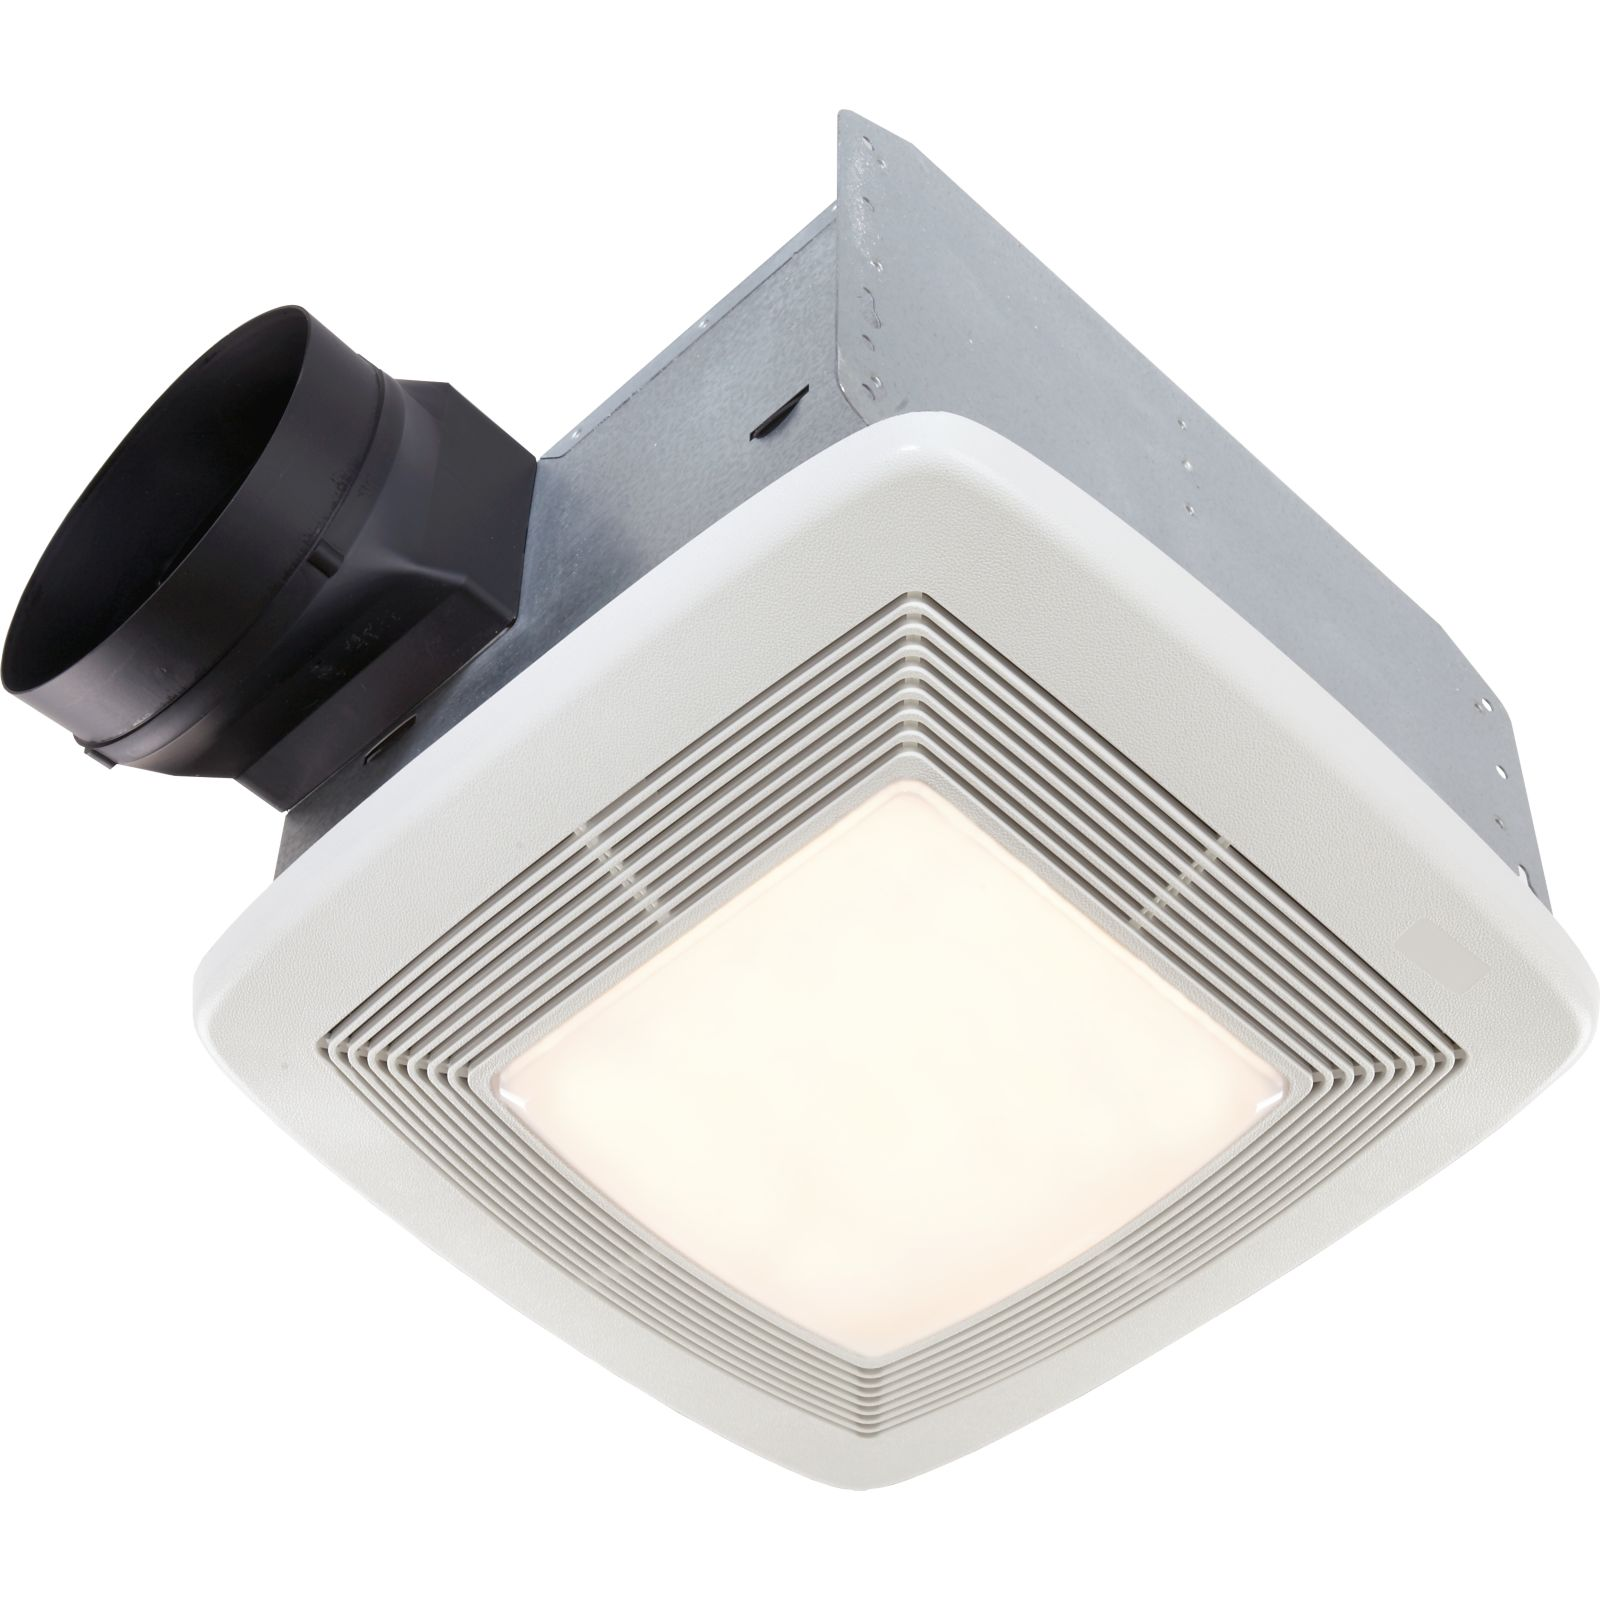 Broan QTXE080FLT - 80 CFM, 0.3 Sones, Energy Star Fan/Fluorescent Light/Night-Light. CA Only - Title 24 Compliant.